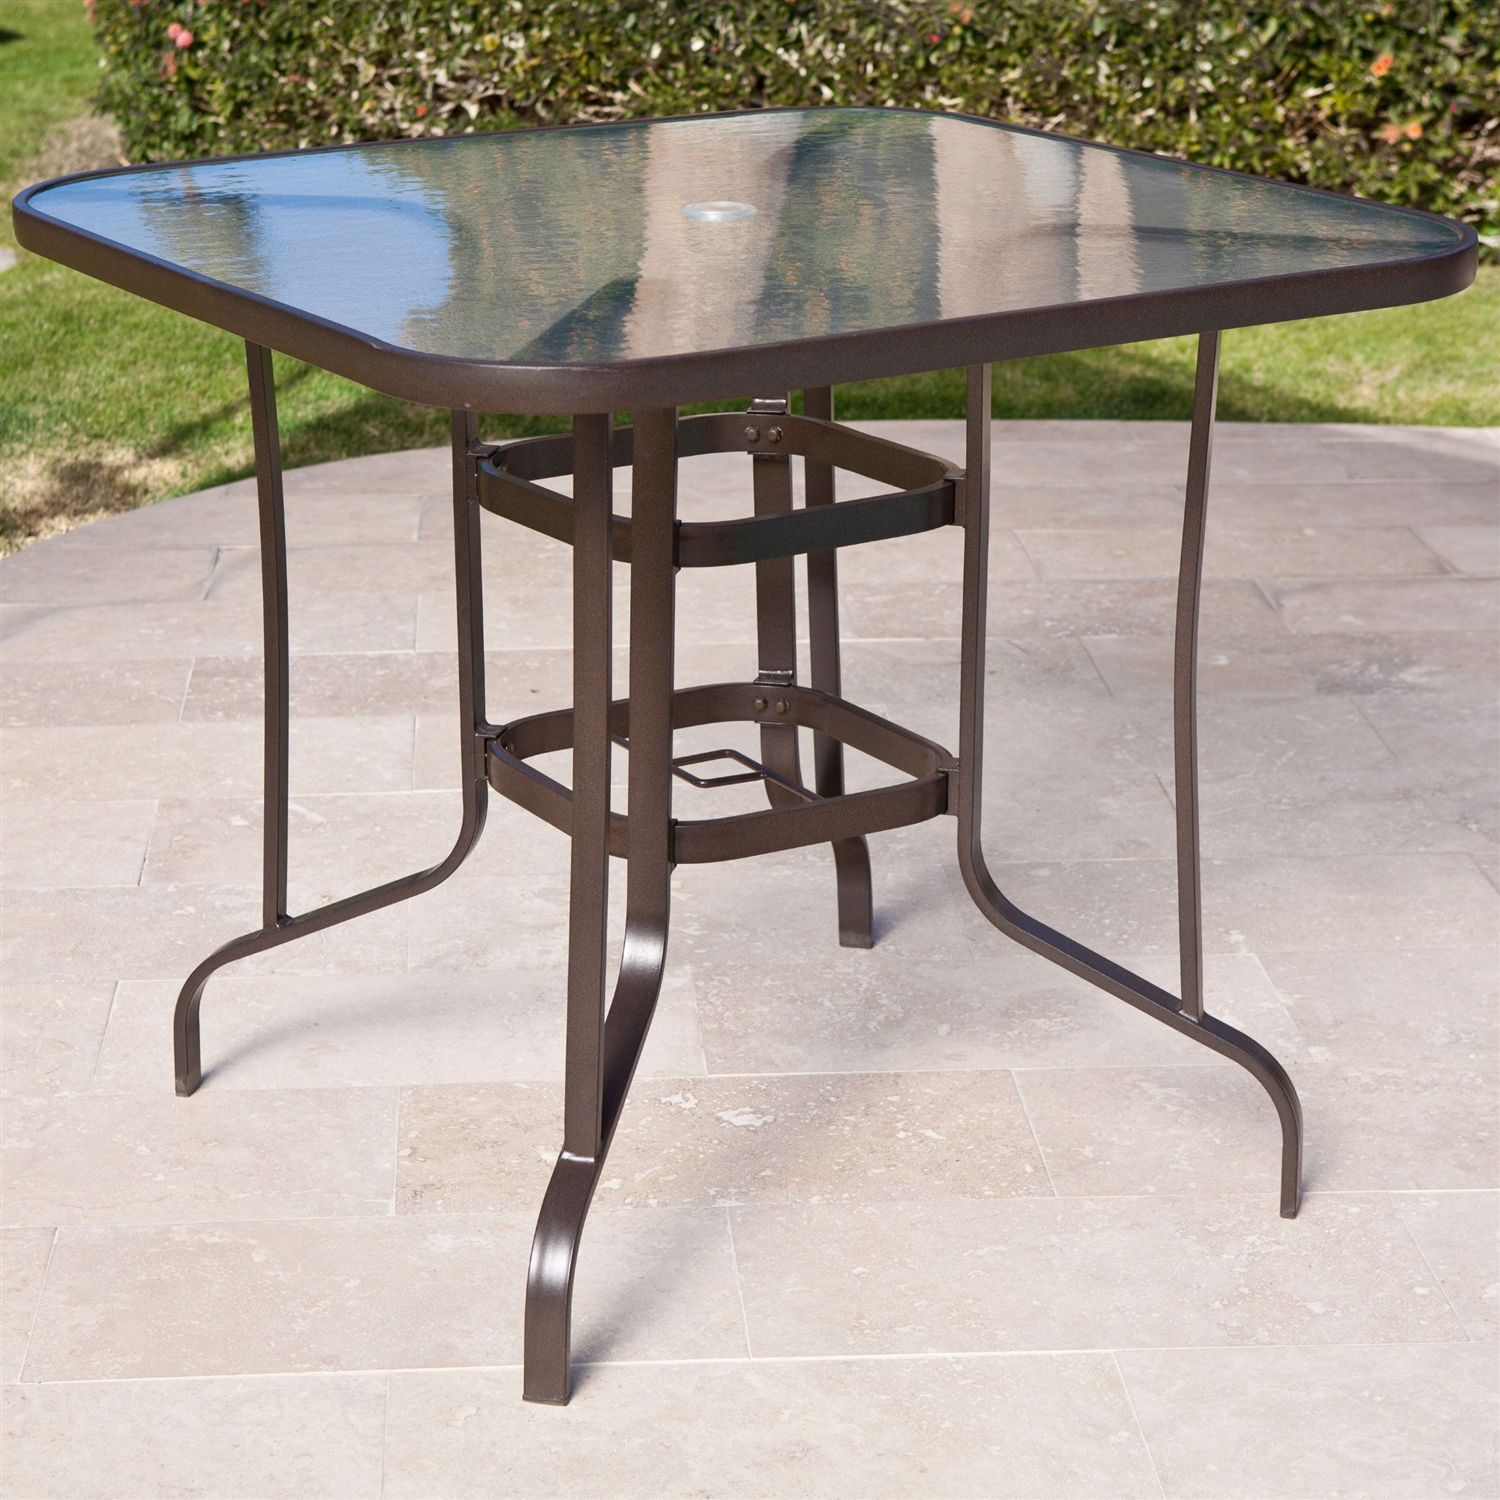 Glass top patio dining table furniture ideas pinterest glass top patio dining table watchthetrailerfo